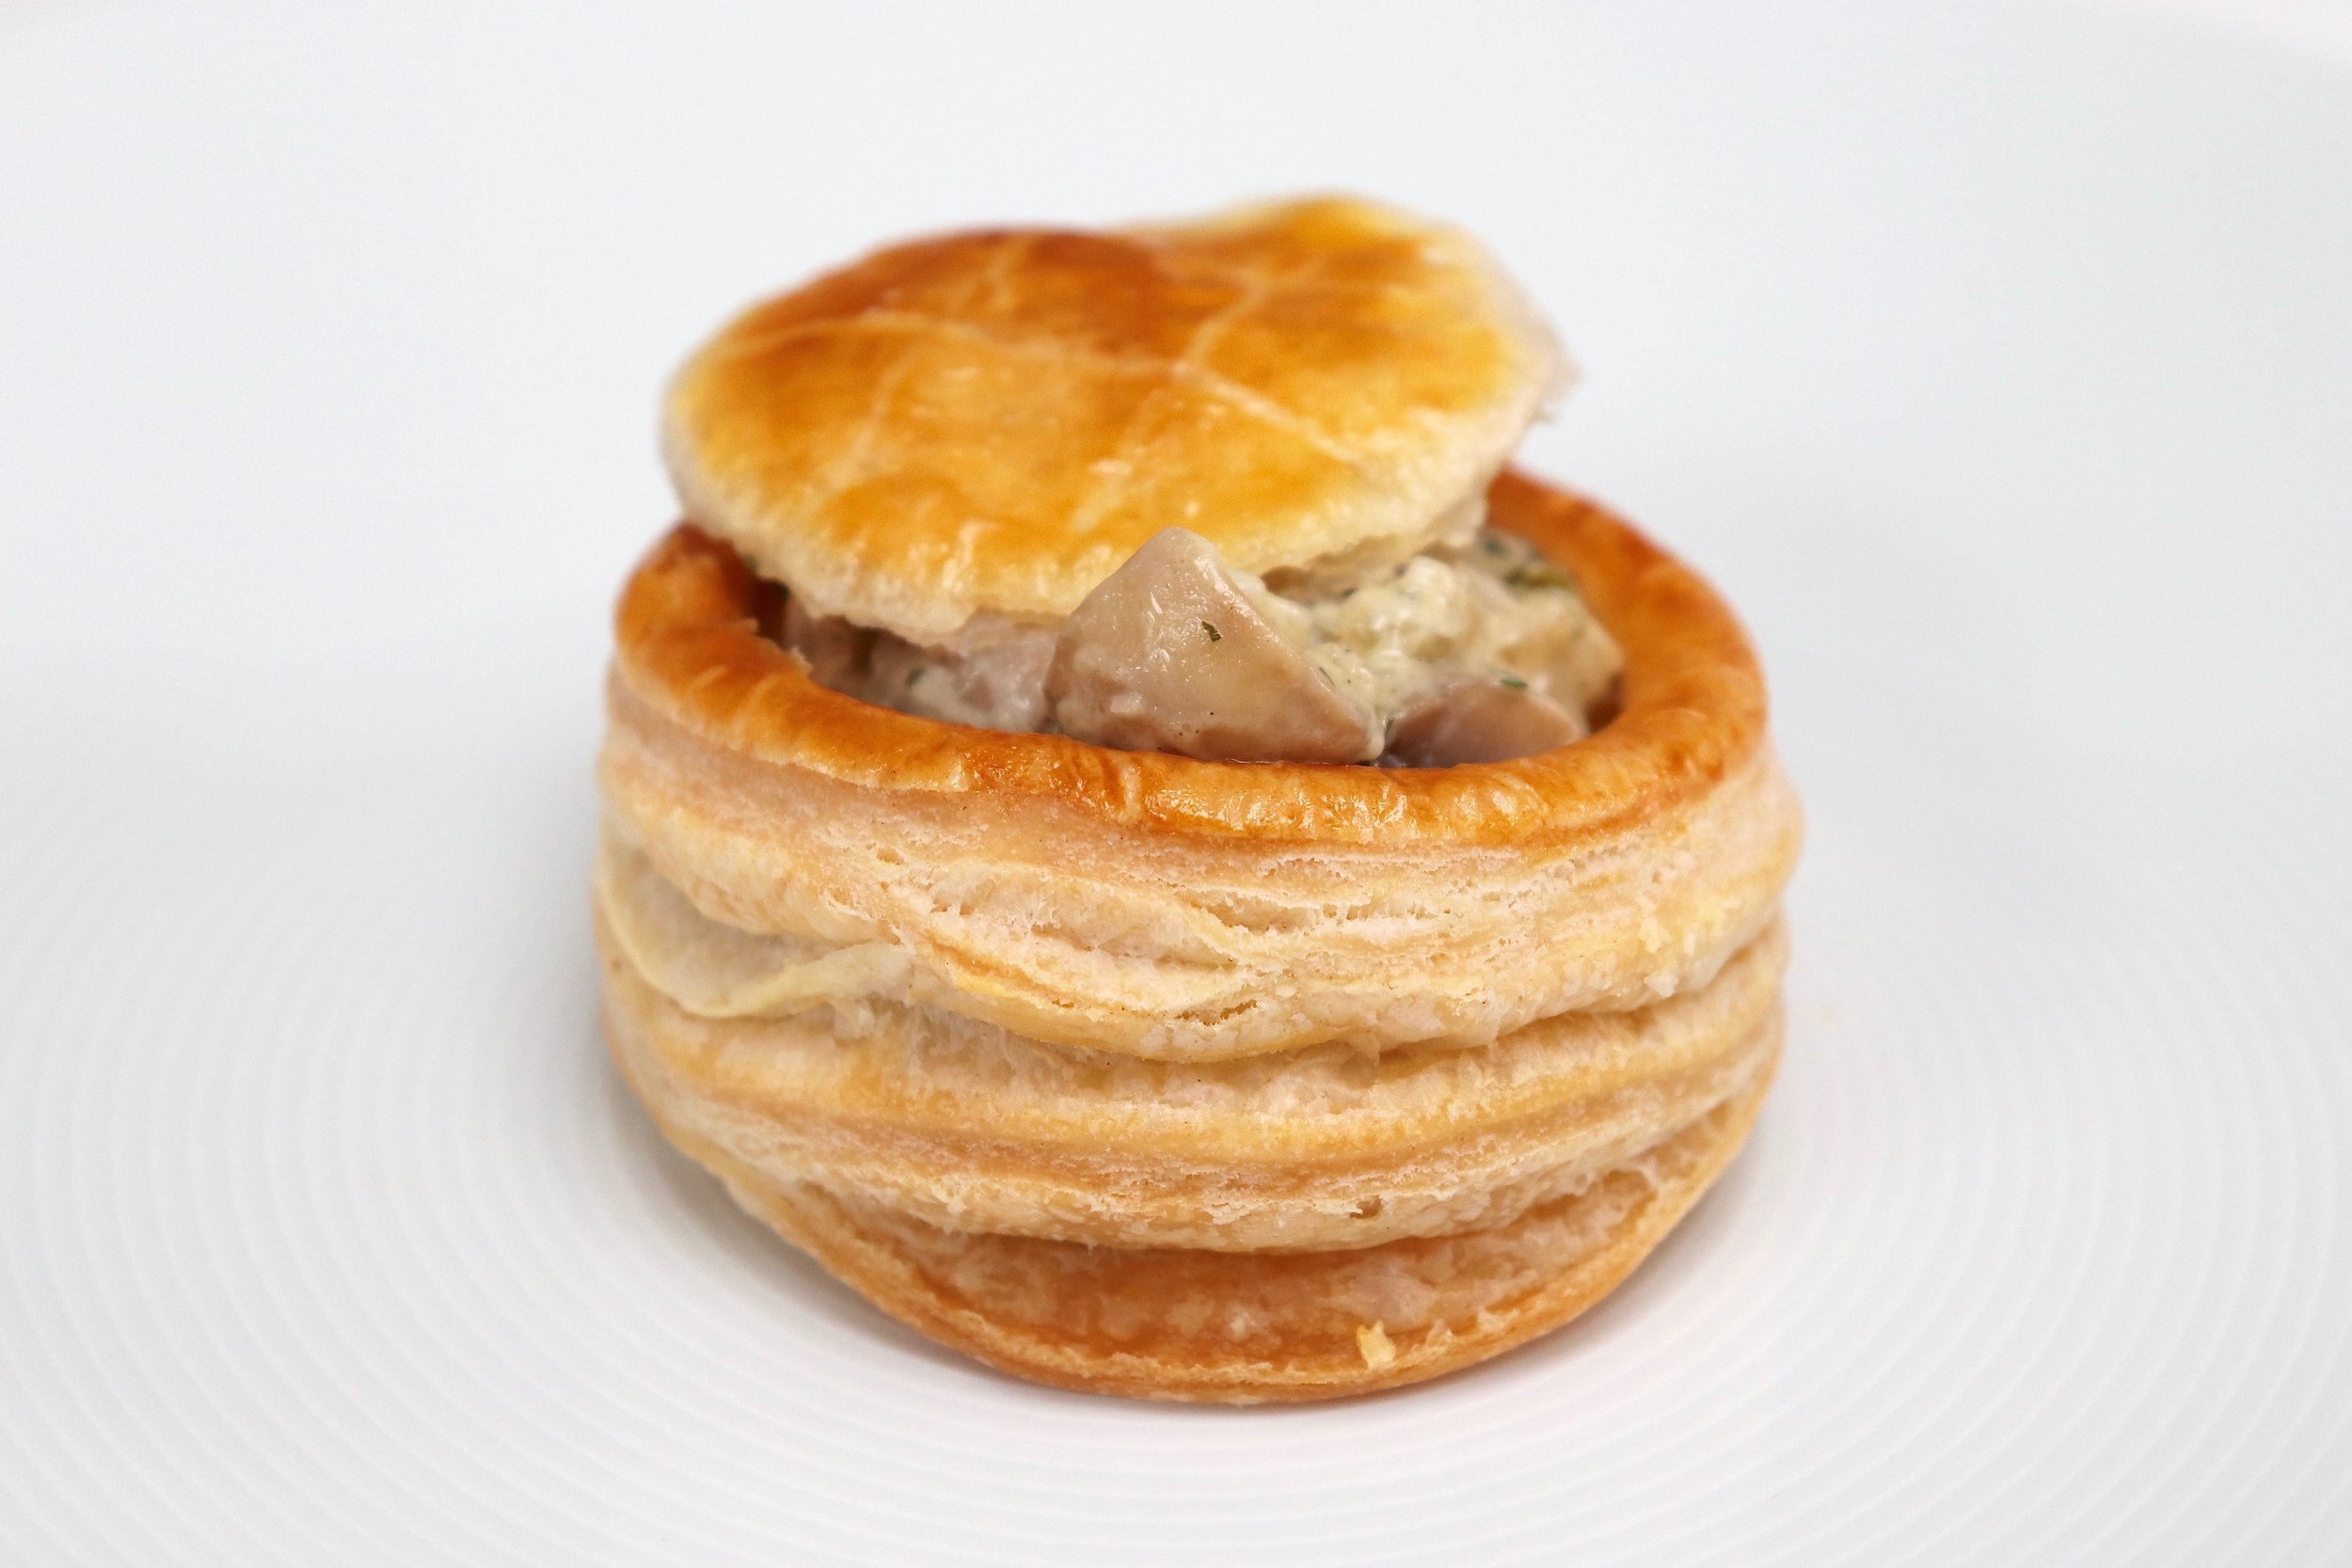 Mushroom sauce in a puff pastry case